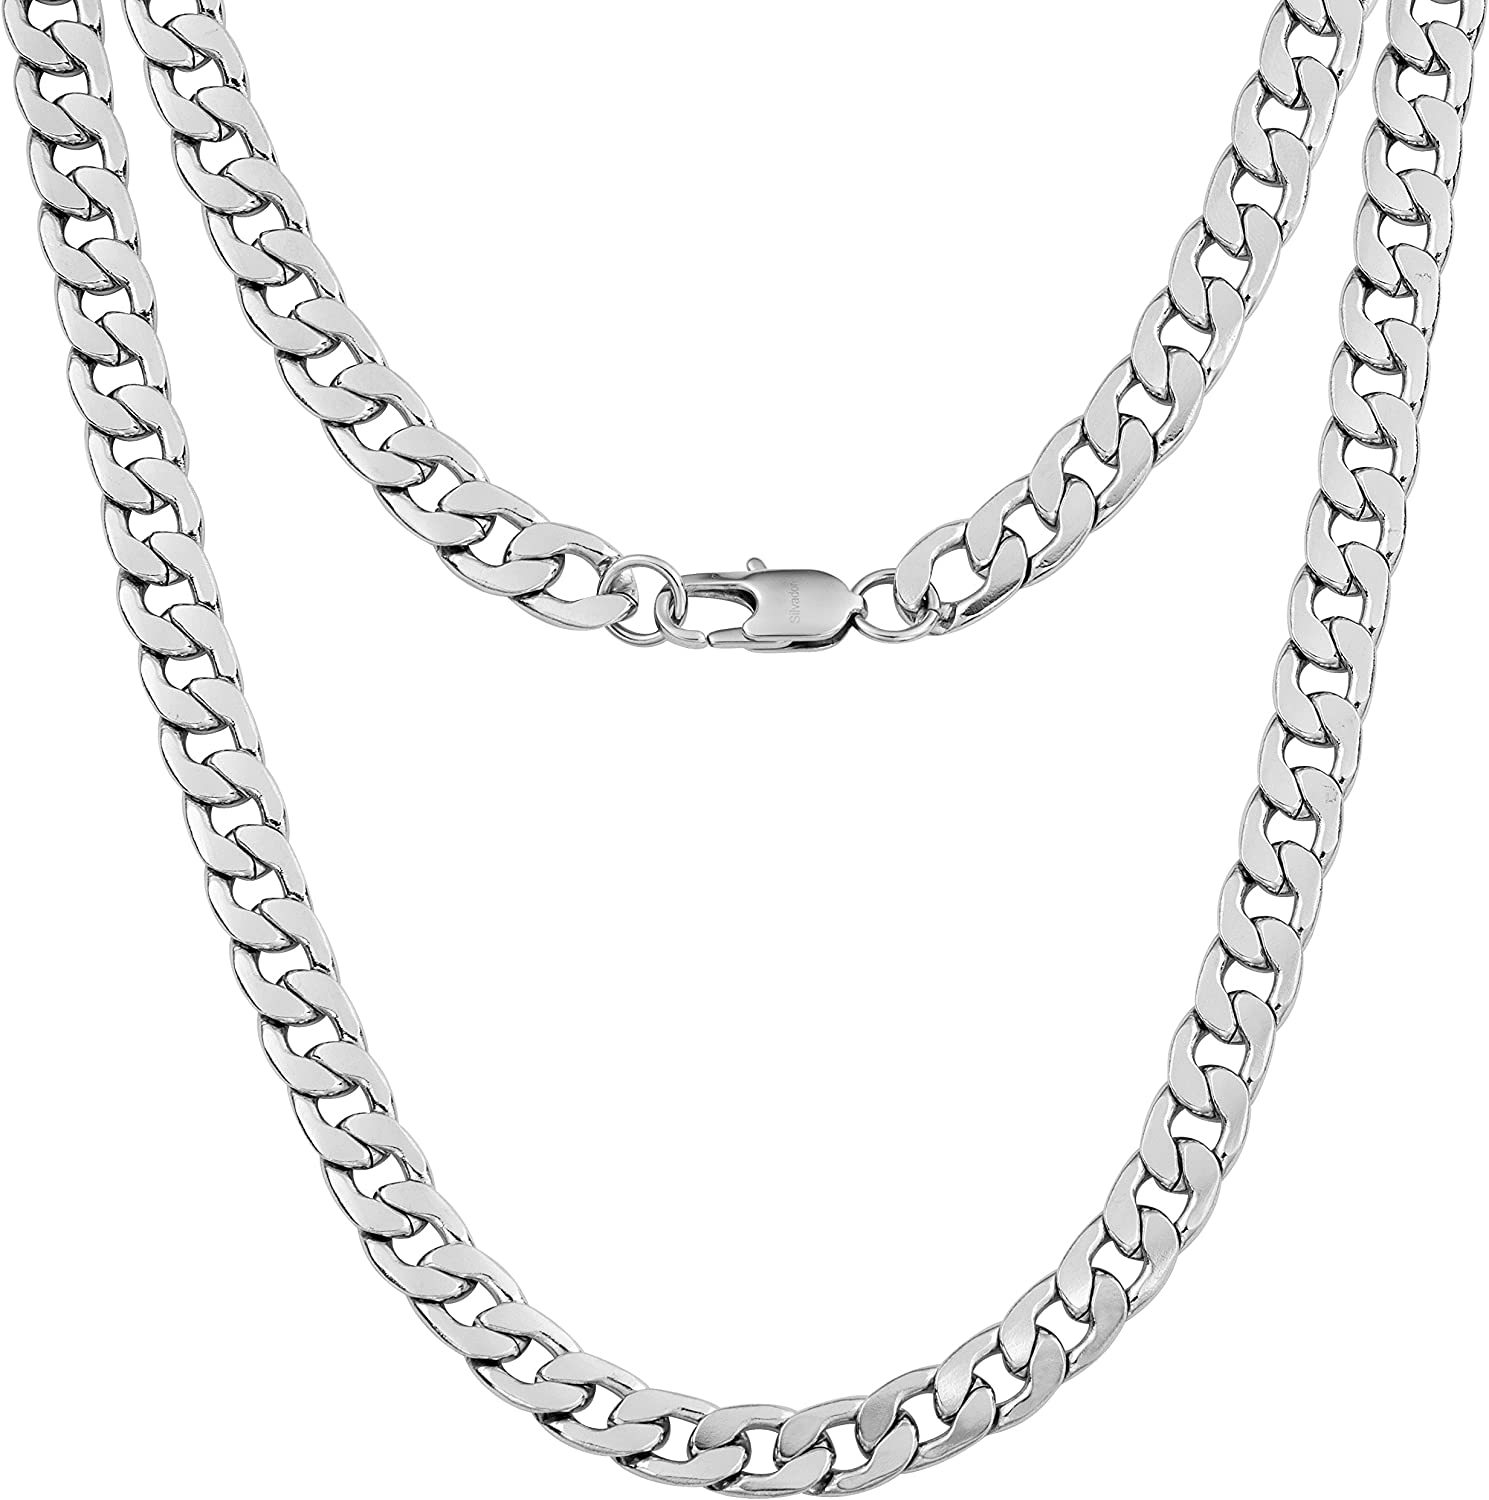 Silvadore 9mm Curb Mens Necklace - Silver Chain Flat Cuban Stainless Steel Jewelry - Neck Link Chains for Men Man Boys Male Heavy Military - 18 20 22 24 inch